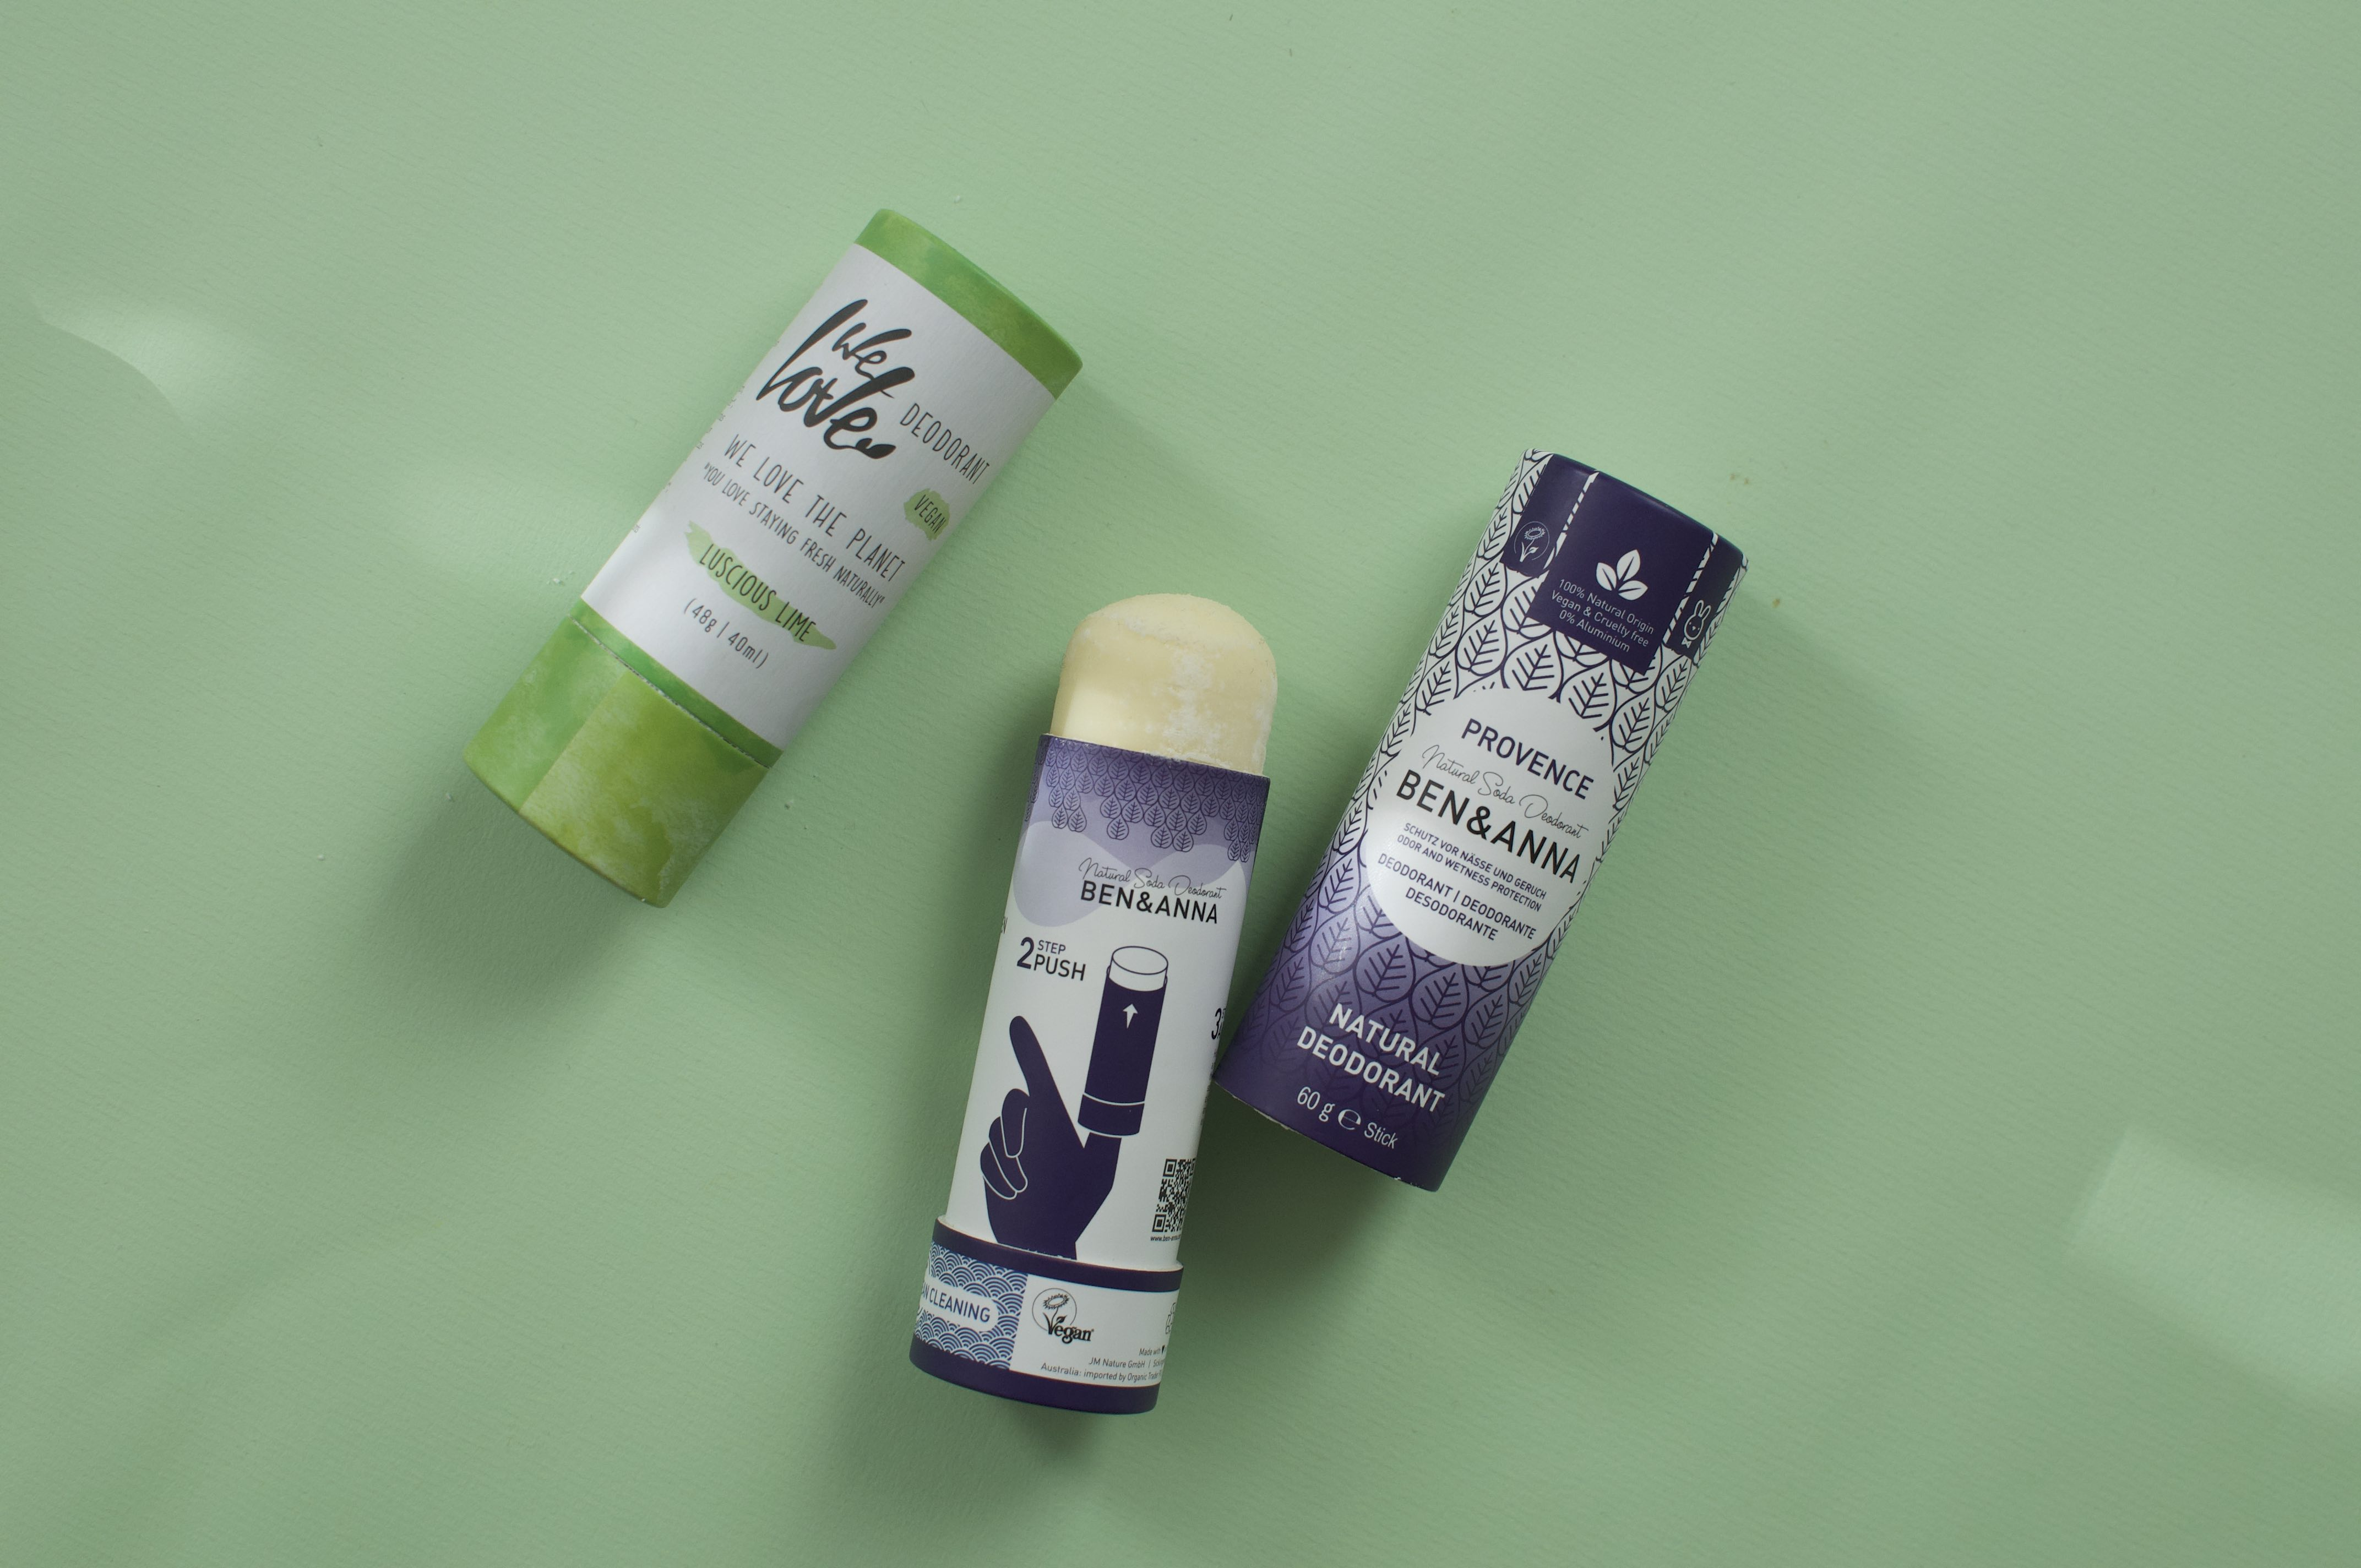 review we love the planet ben & anna deodorant